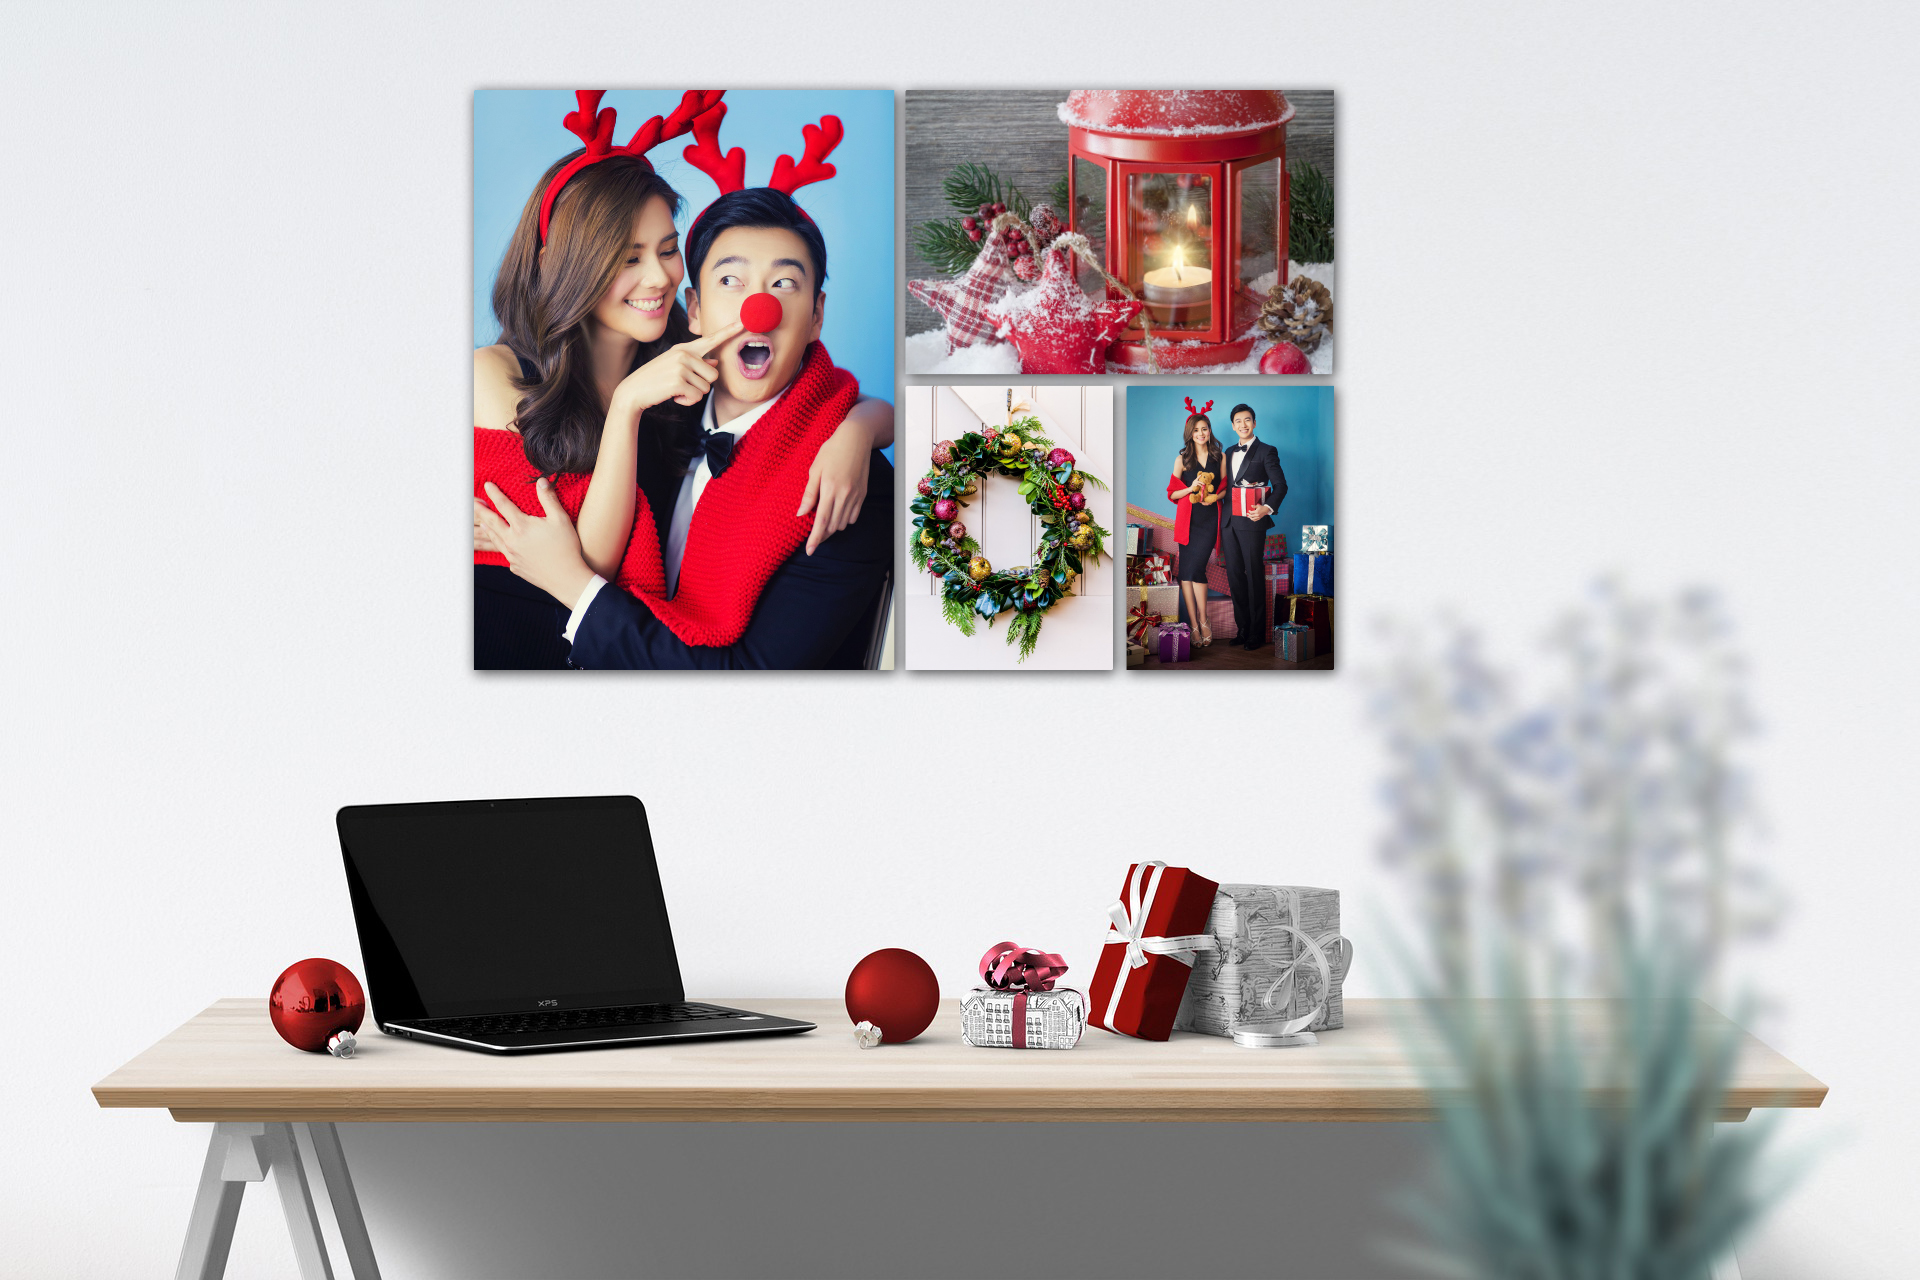 Custom Photo Gifts for the Holidays by ArtisanHD